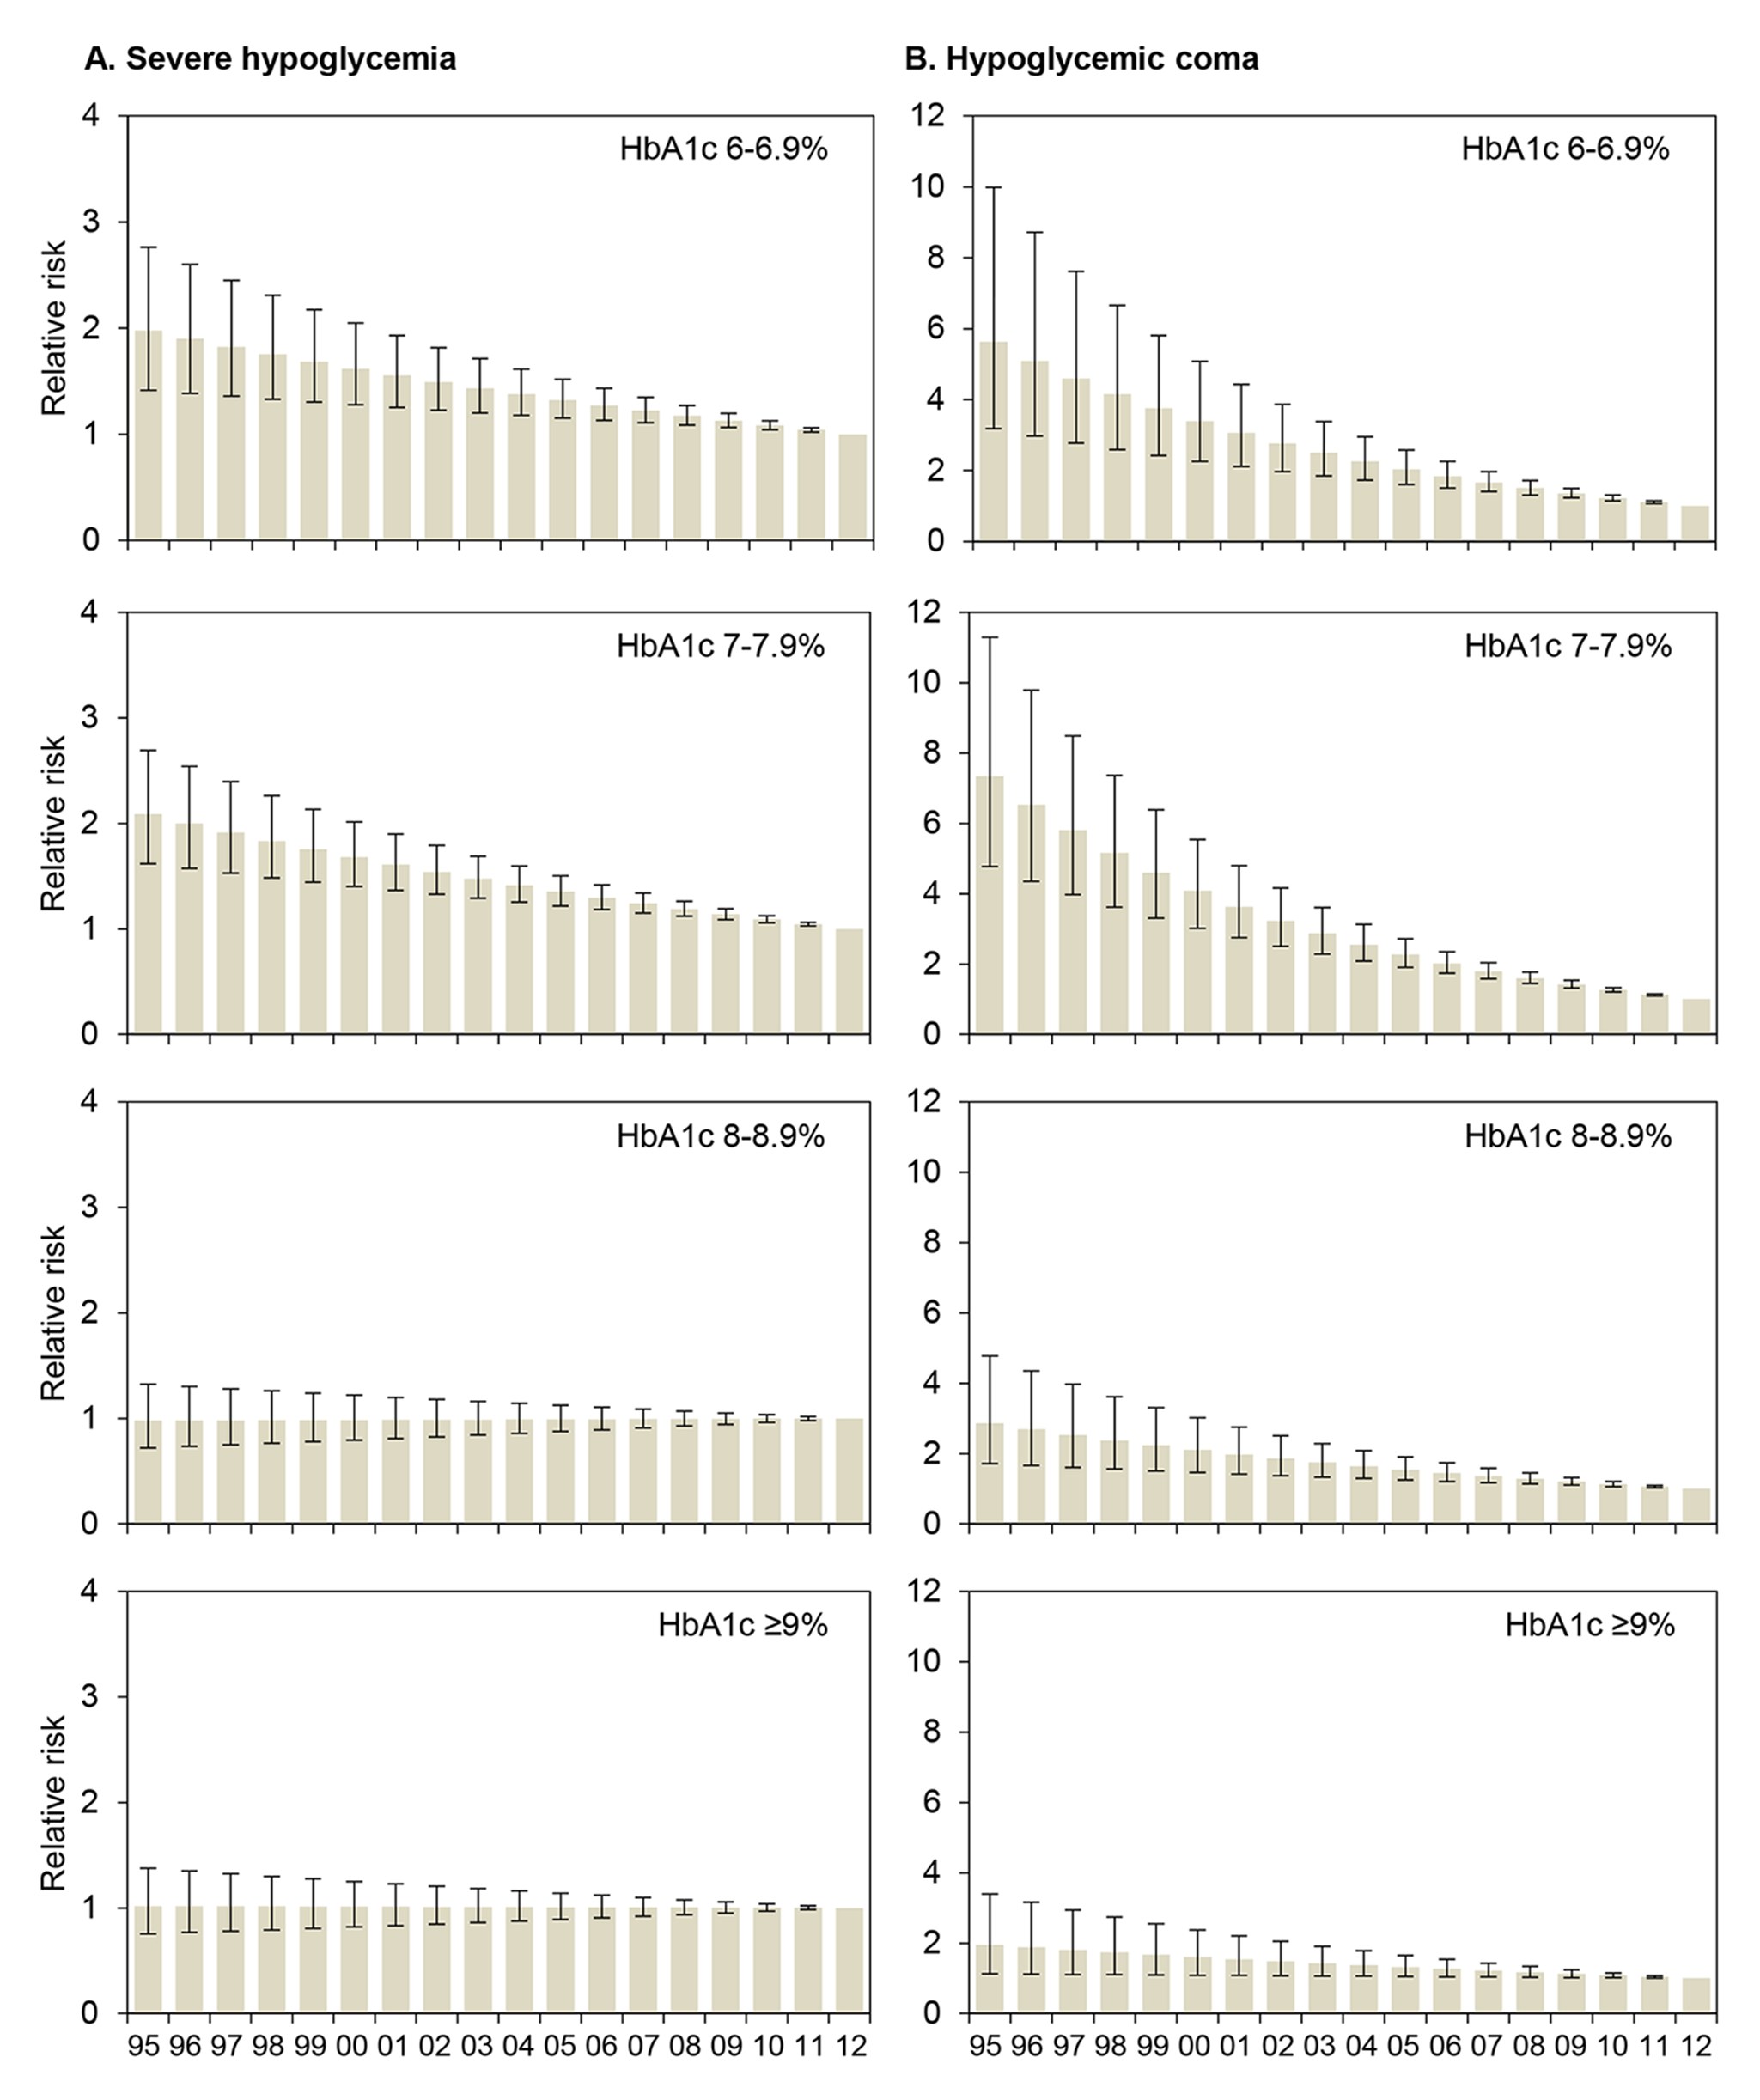 Relative risk for severe hypoglycemia and hypoglycemic coma by HbA1c category for each treatment year.